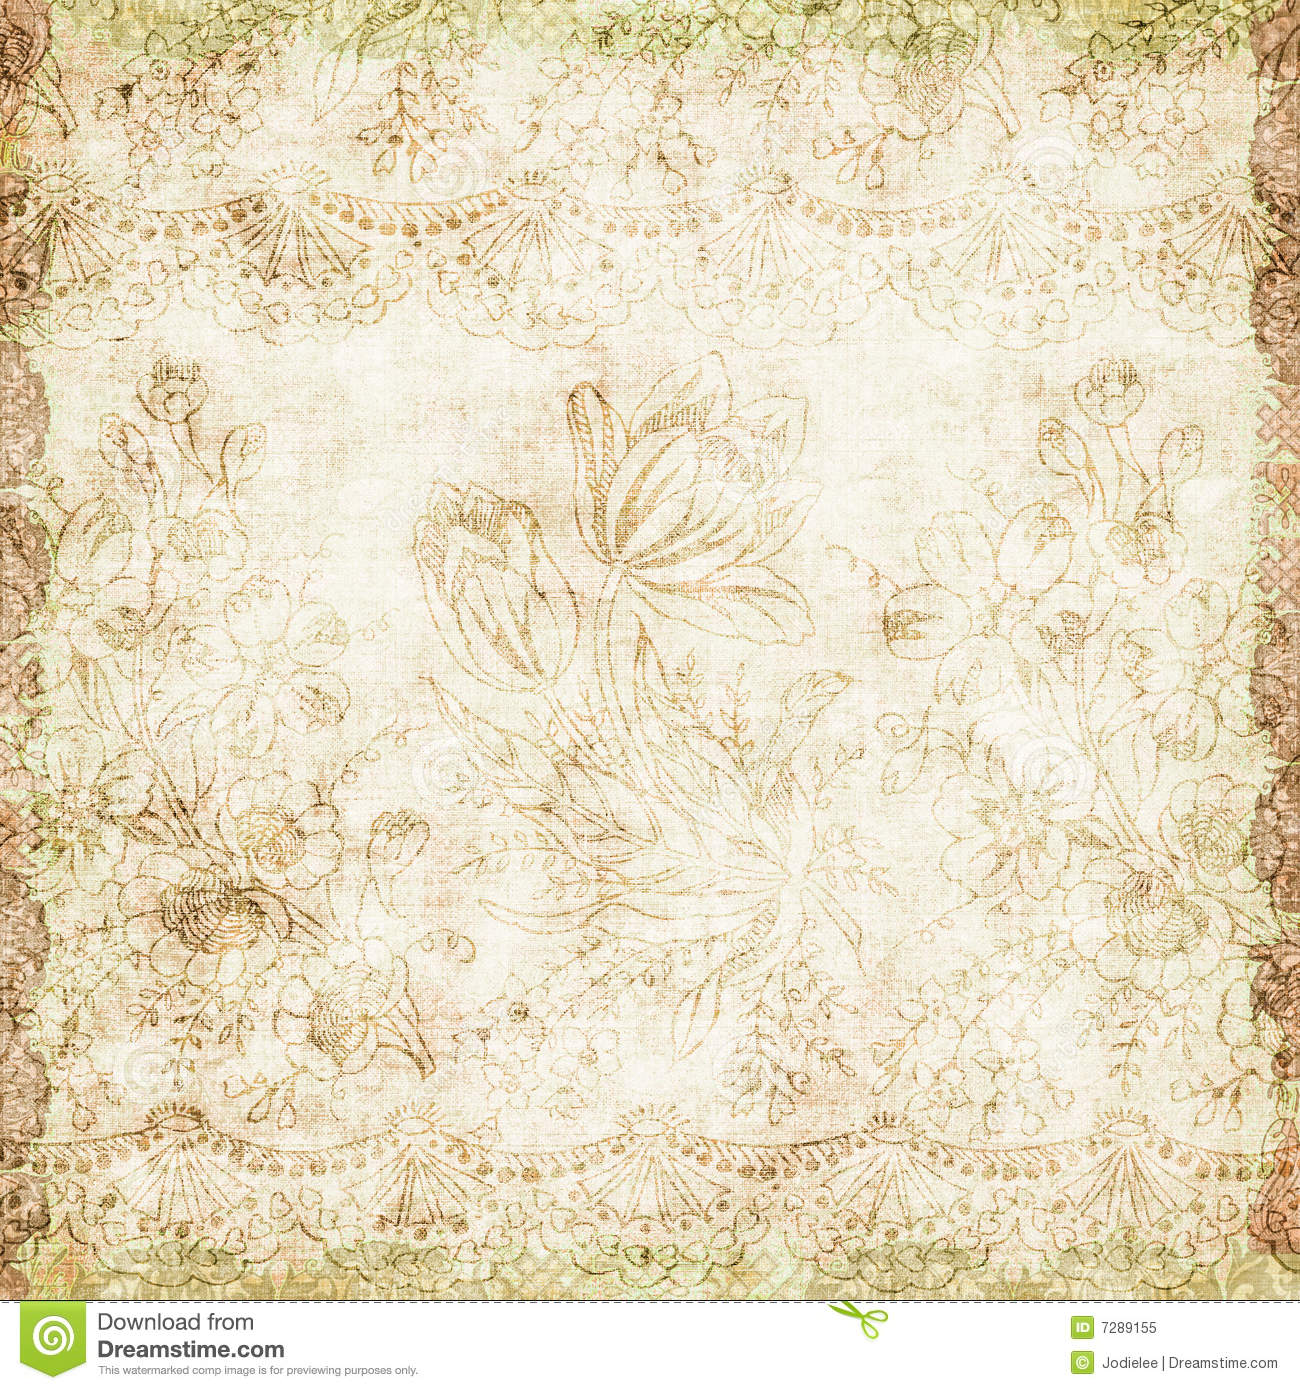 Vintage Floral Antique Background Theme Stock Images - Image: 7293374